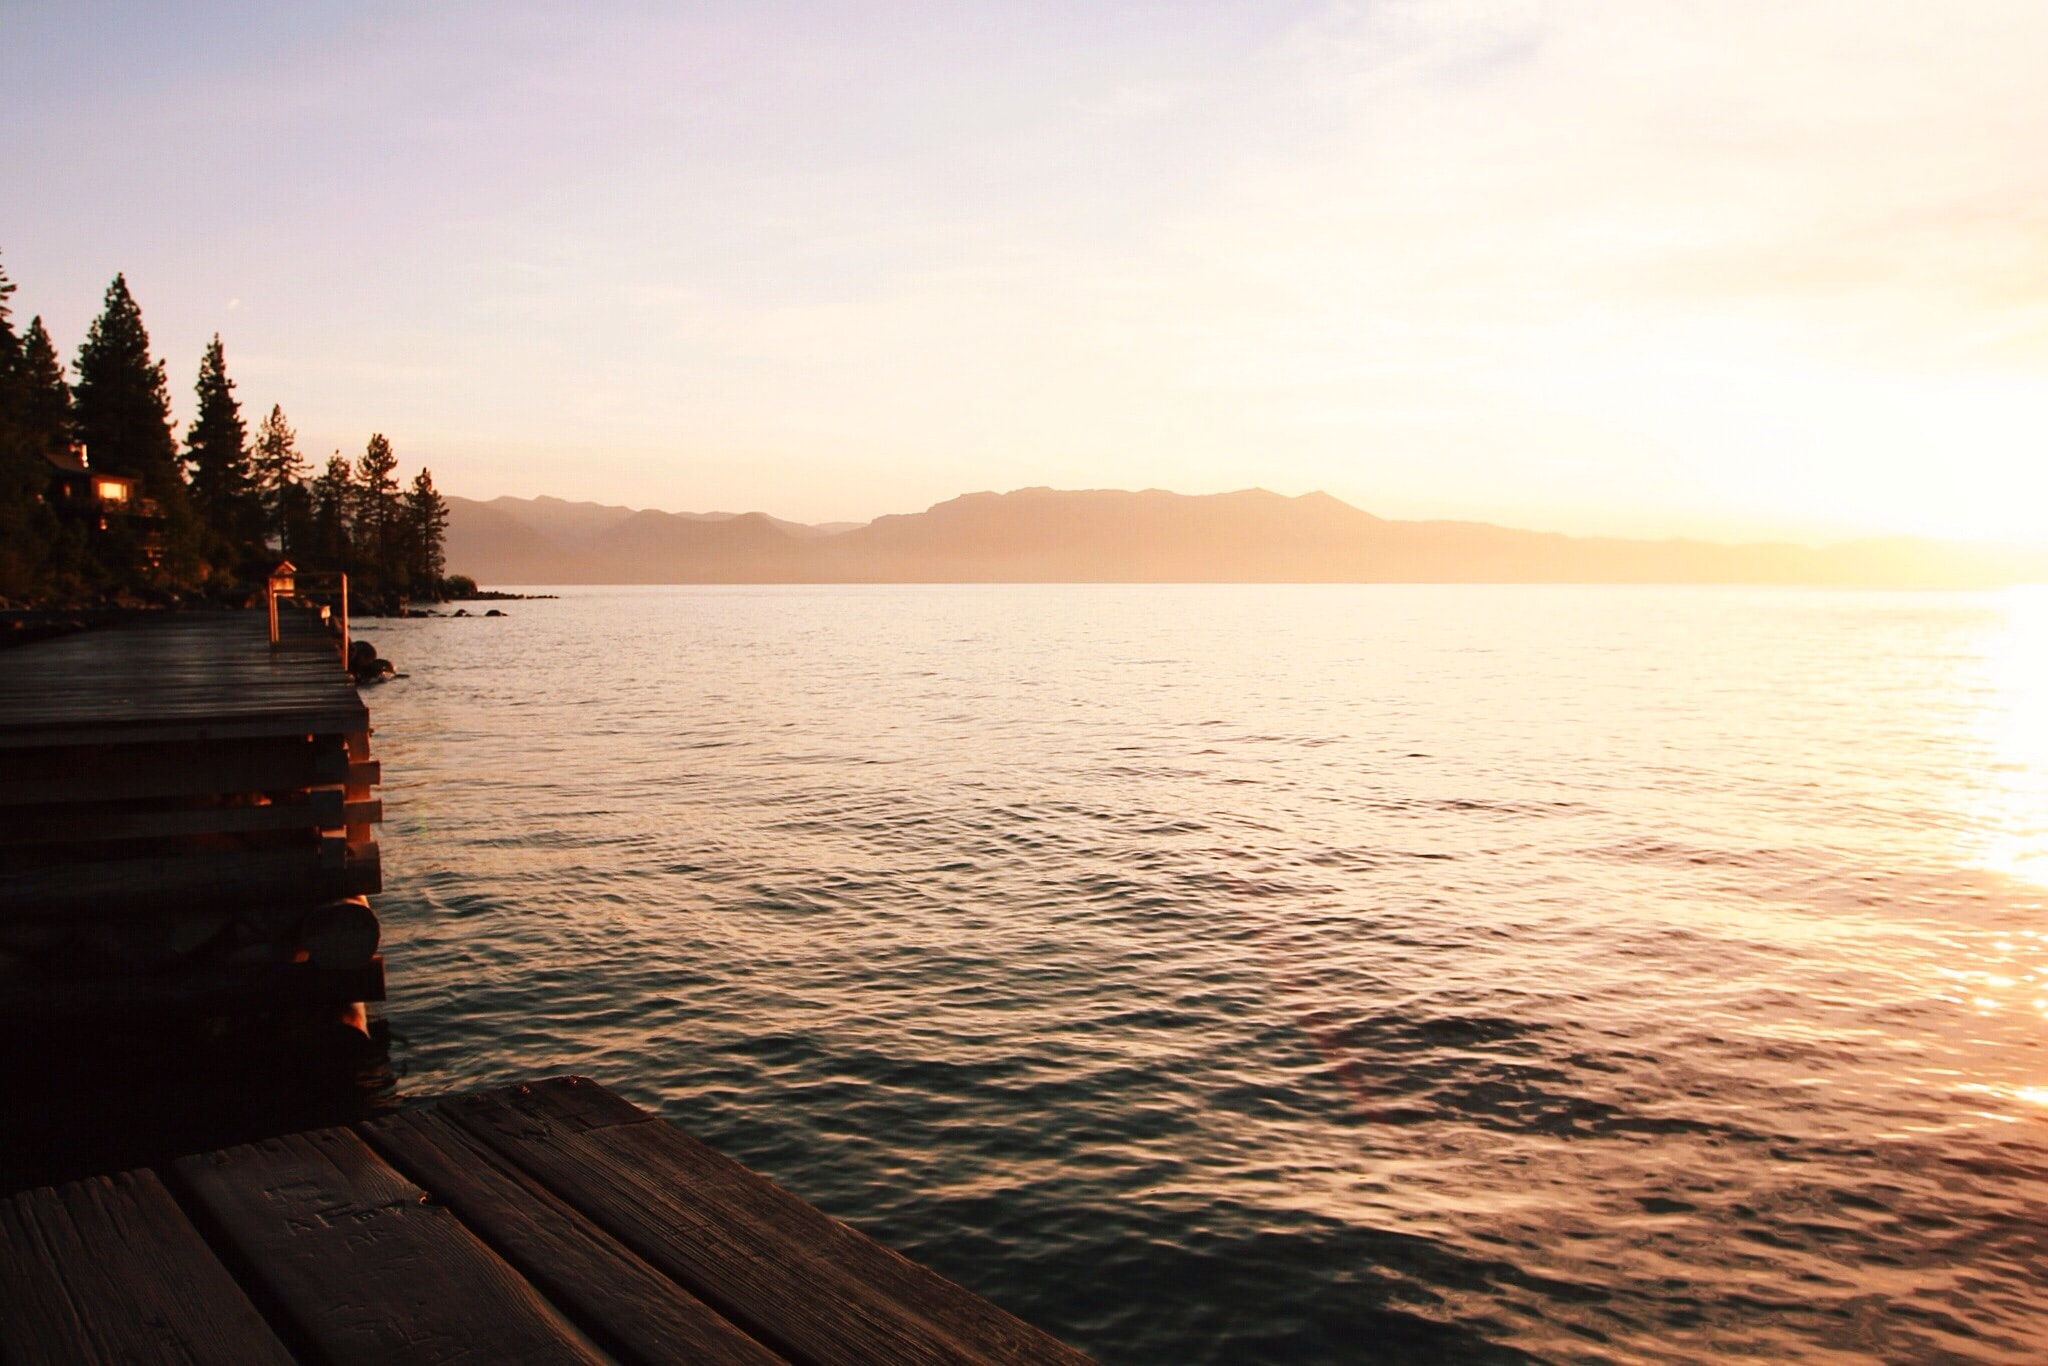 wooden dock on ocean during golden hour